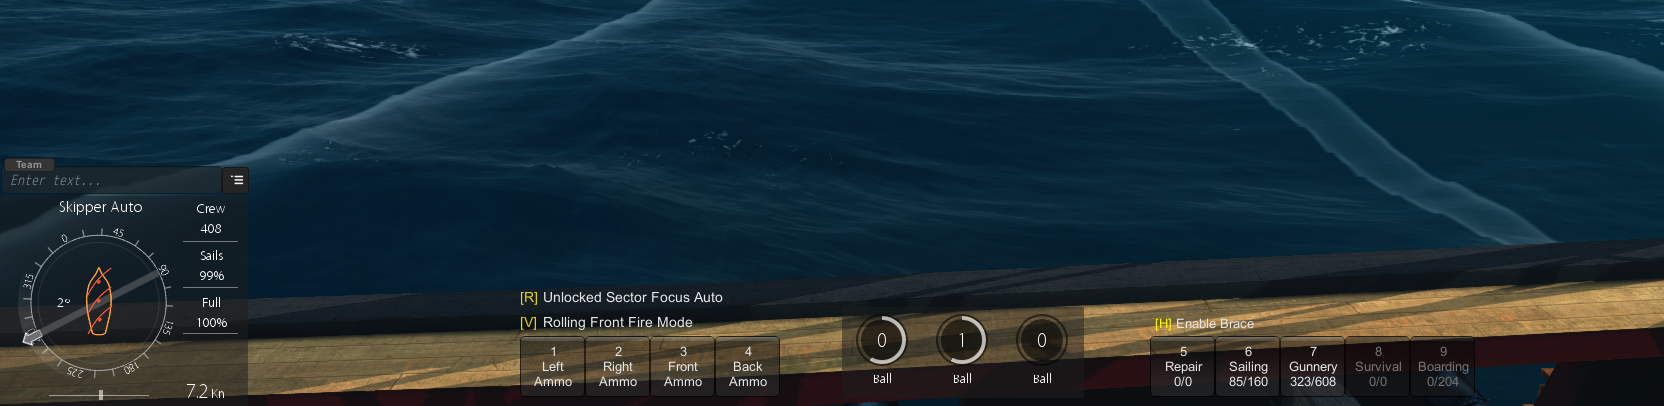 I do not understand why my cannons aren't reloading